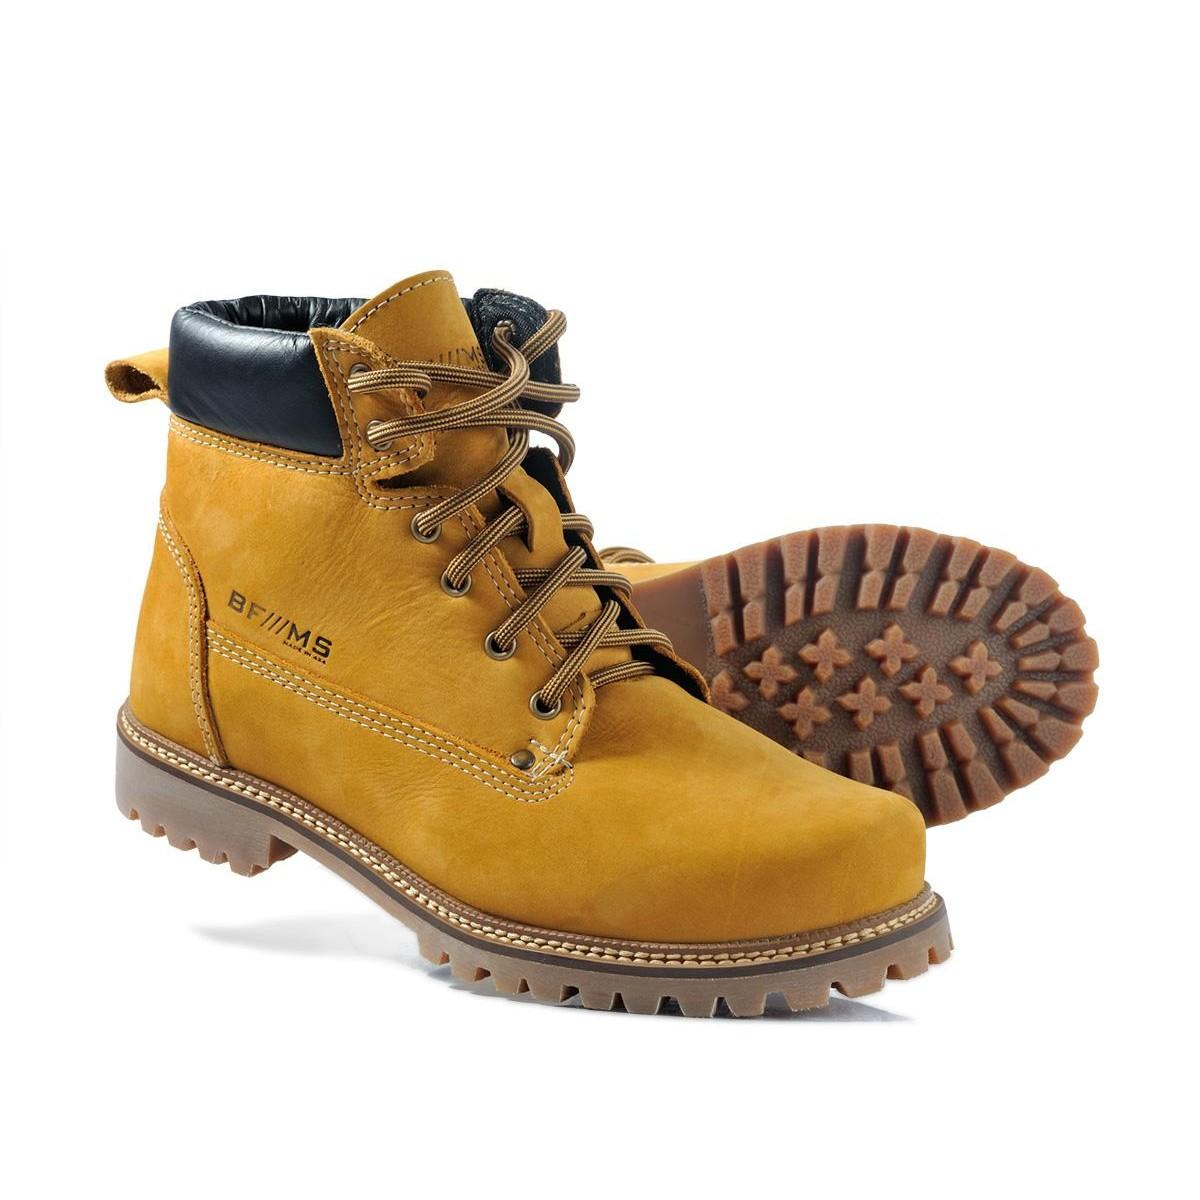 COTURNO BF///MS YELLOW BOOT COURO LEGITIMO